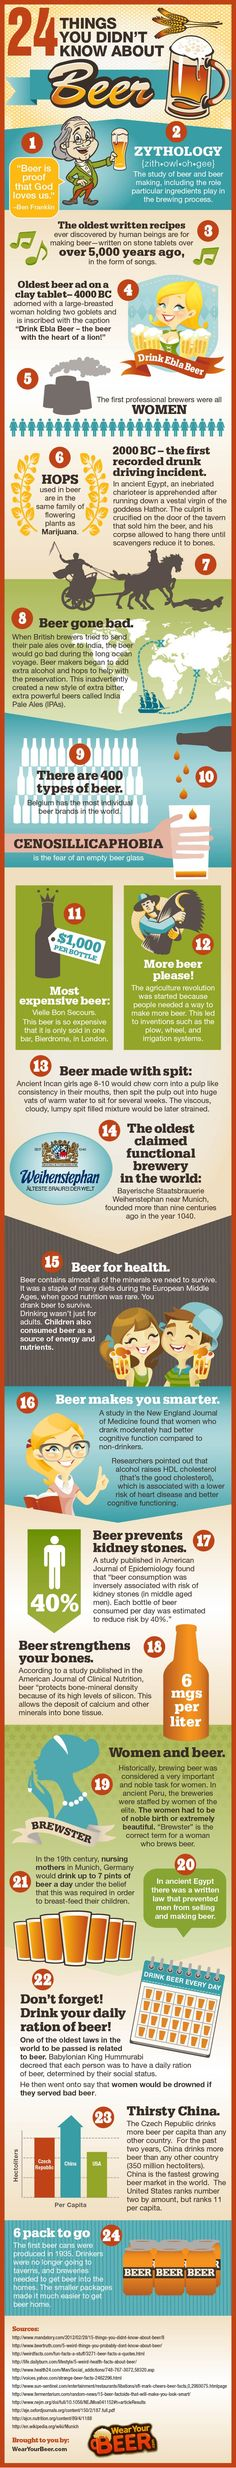 Infographic: 24 Things You Didn't Know About Beer | teaches us all the many things we might not know about beer. #drunkdriving